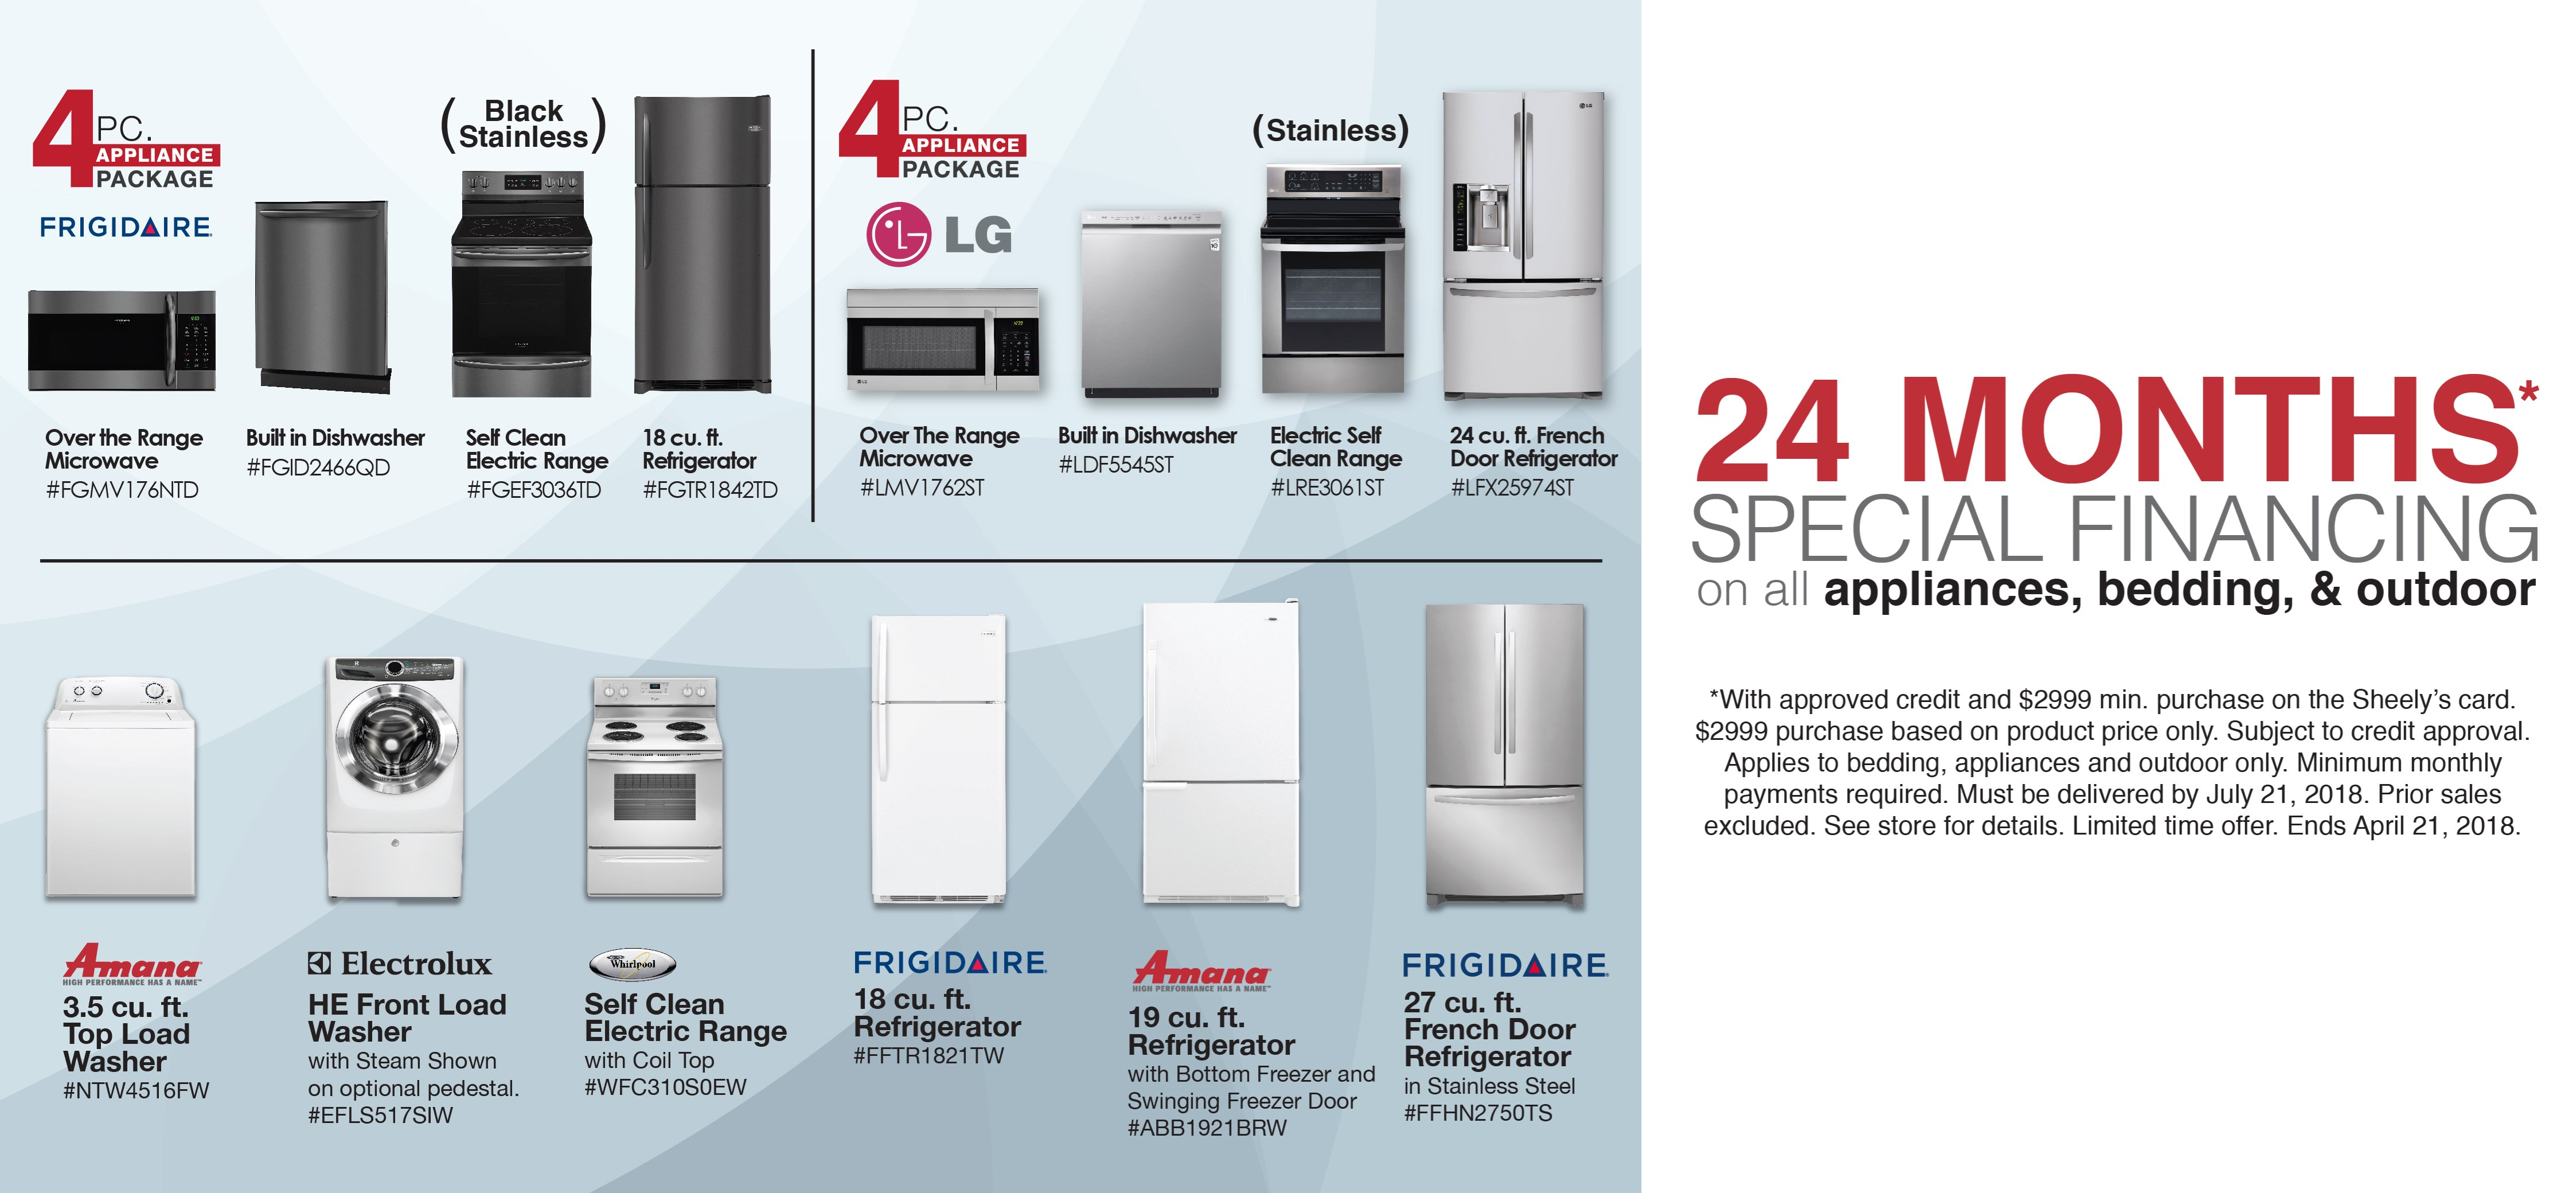 MARCH - BEDDING & APPLIANCE - 3